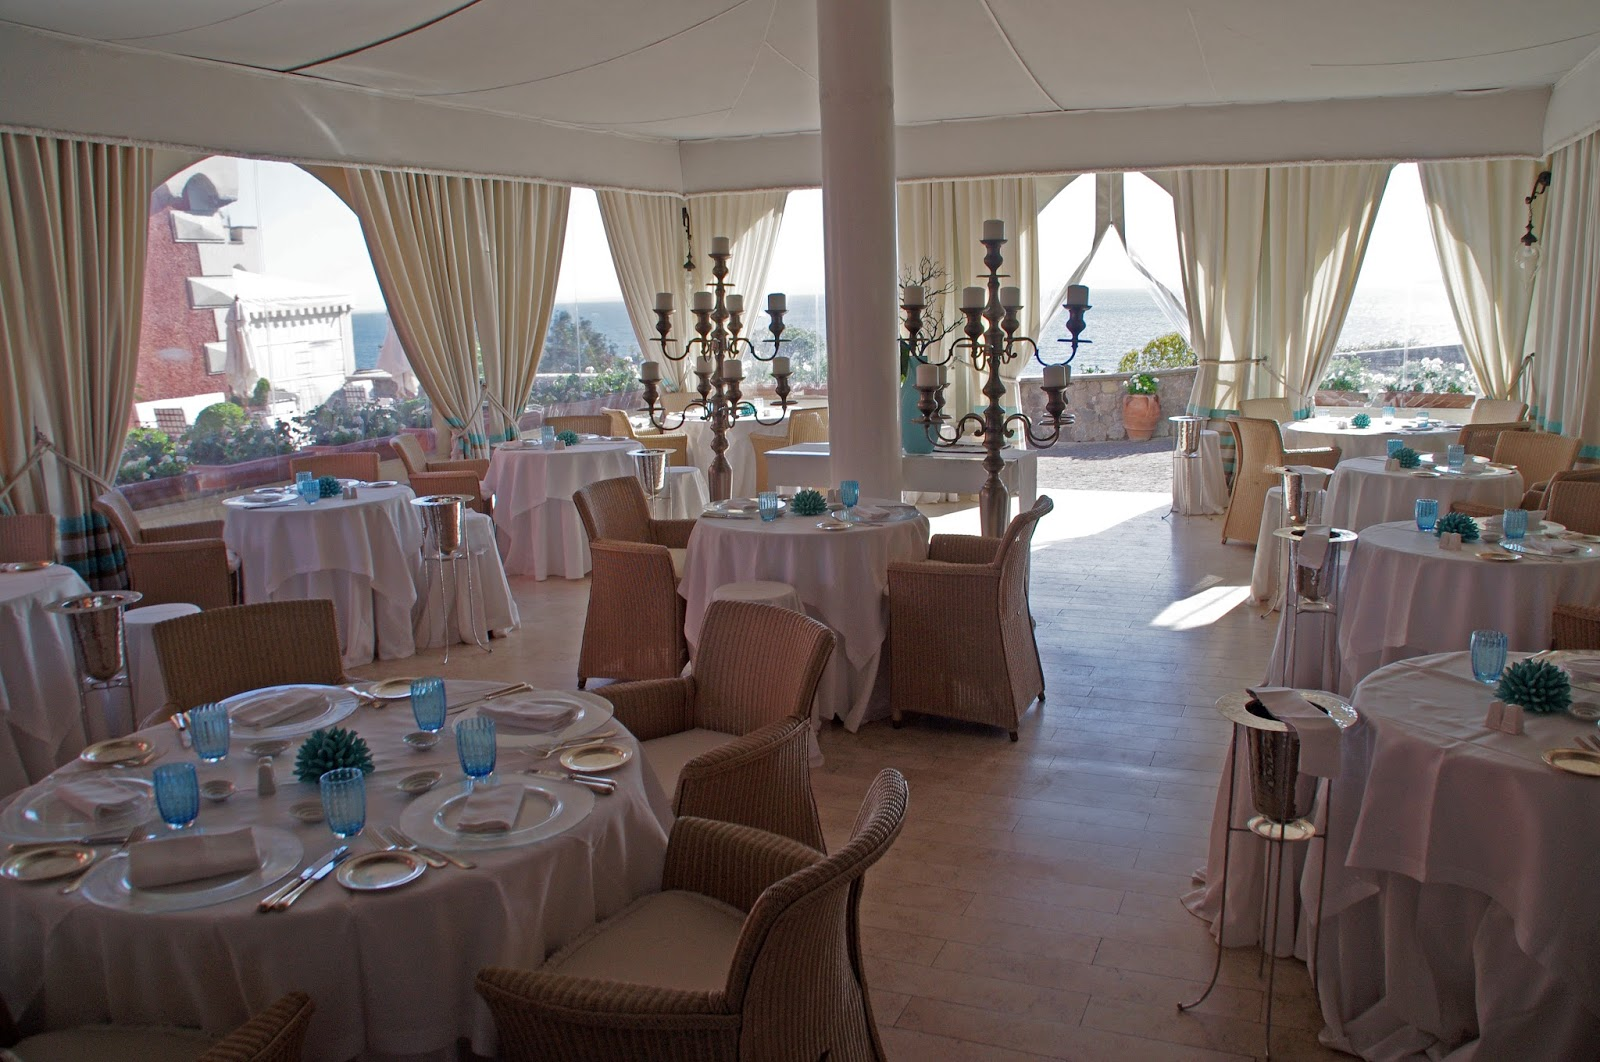 Returning to mezzatorre resort spa an island paradise on ischia the resorts two beautiful restaurants chandelier and sciu sciu draw inspiration from the rich gastronomical culture of ischia creating unique dishes arubaitofo Gallery